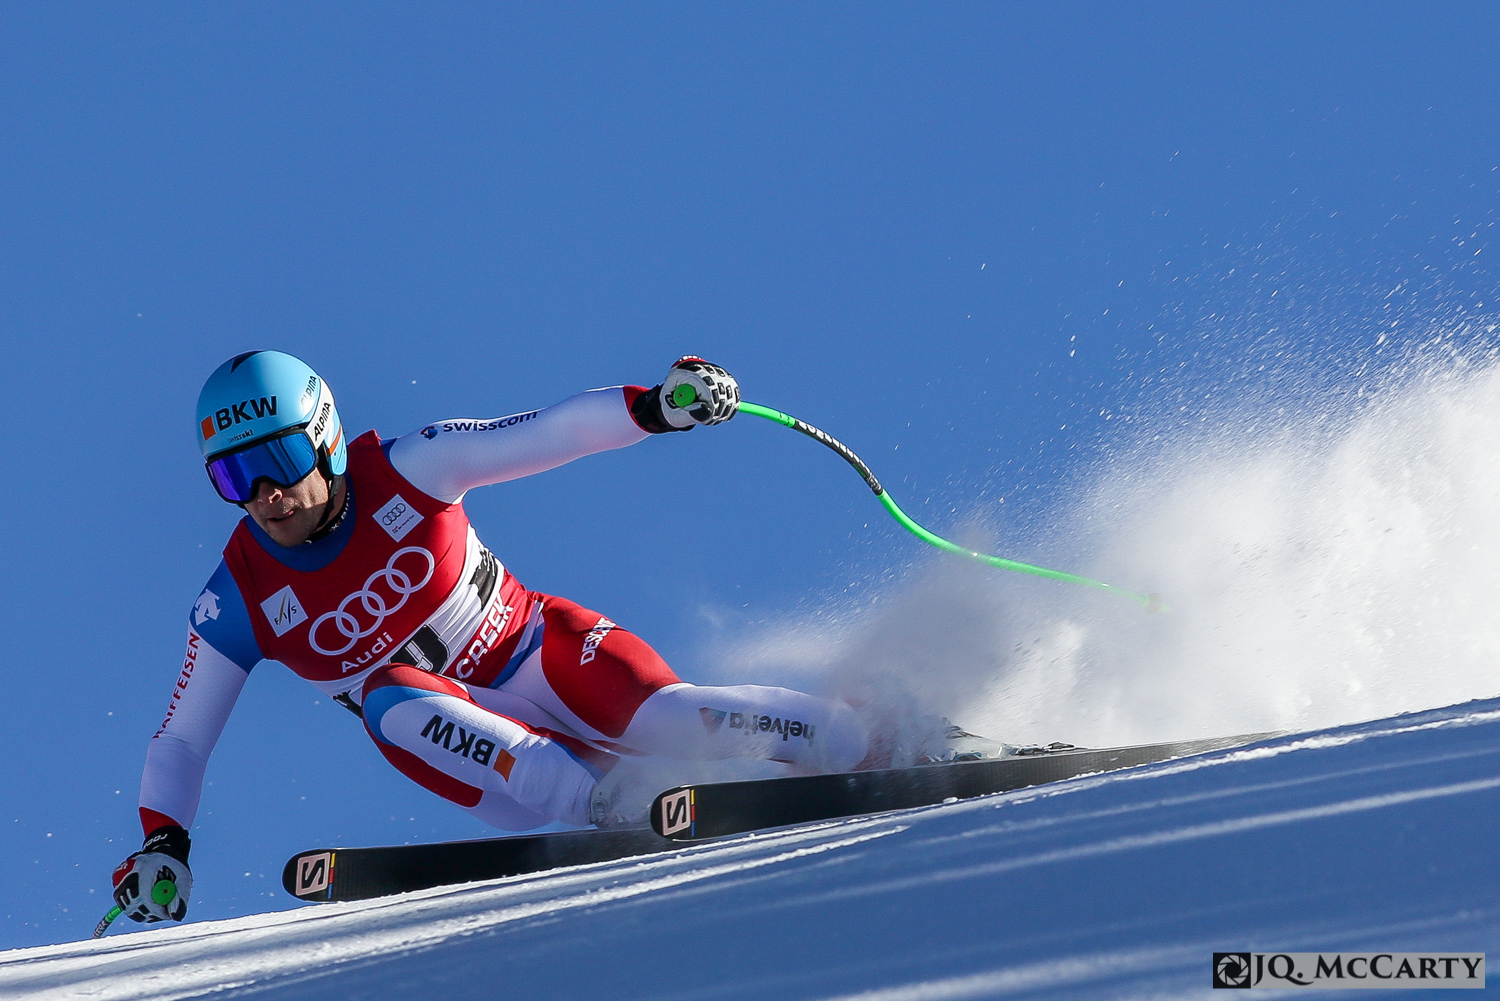 Switzerland's Patrick Kueng rips through the brink section of the Birds of Prey World Cup downhill race Friday in Beaver Creek. Kueng finished ninth fastest with a time of 1 minute, 43.59 seconds.